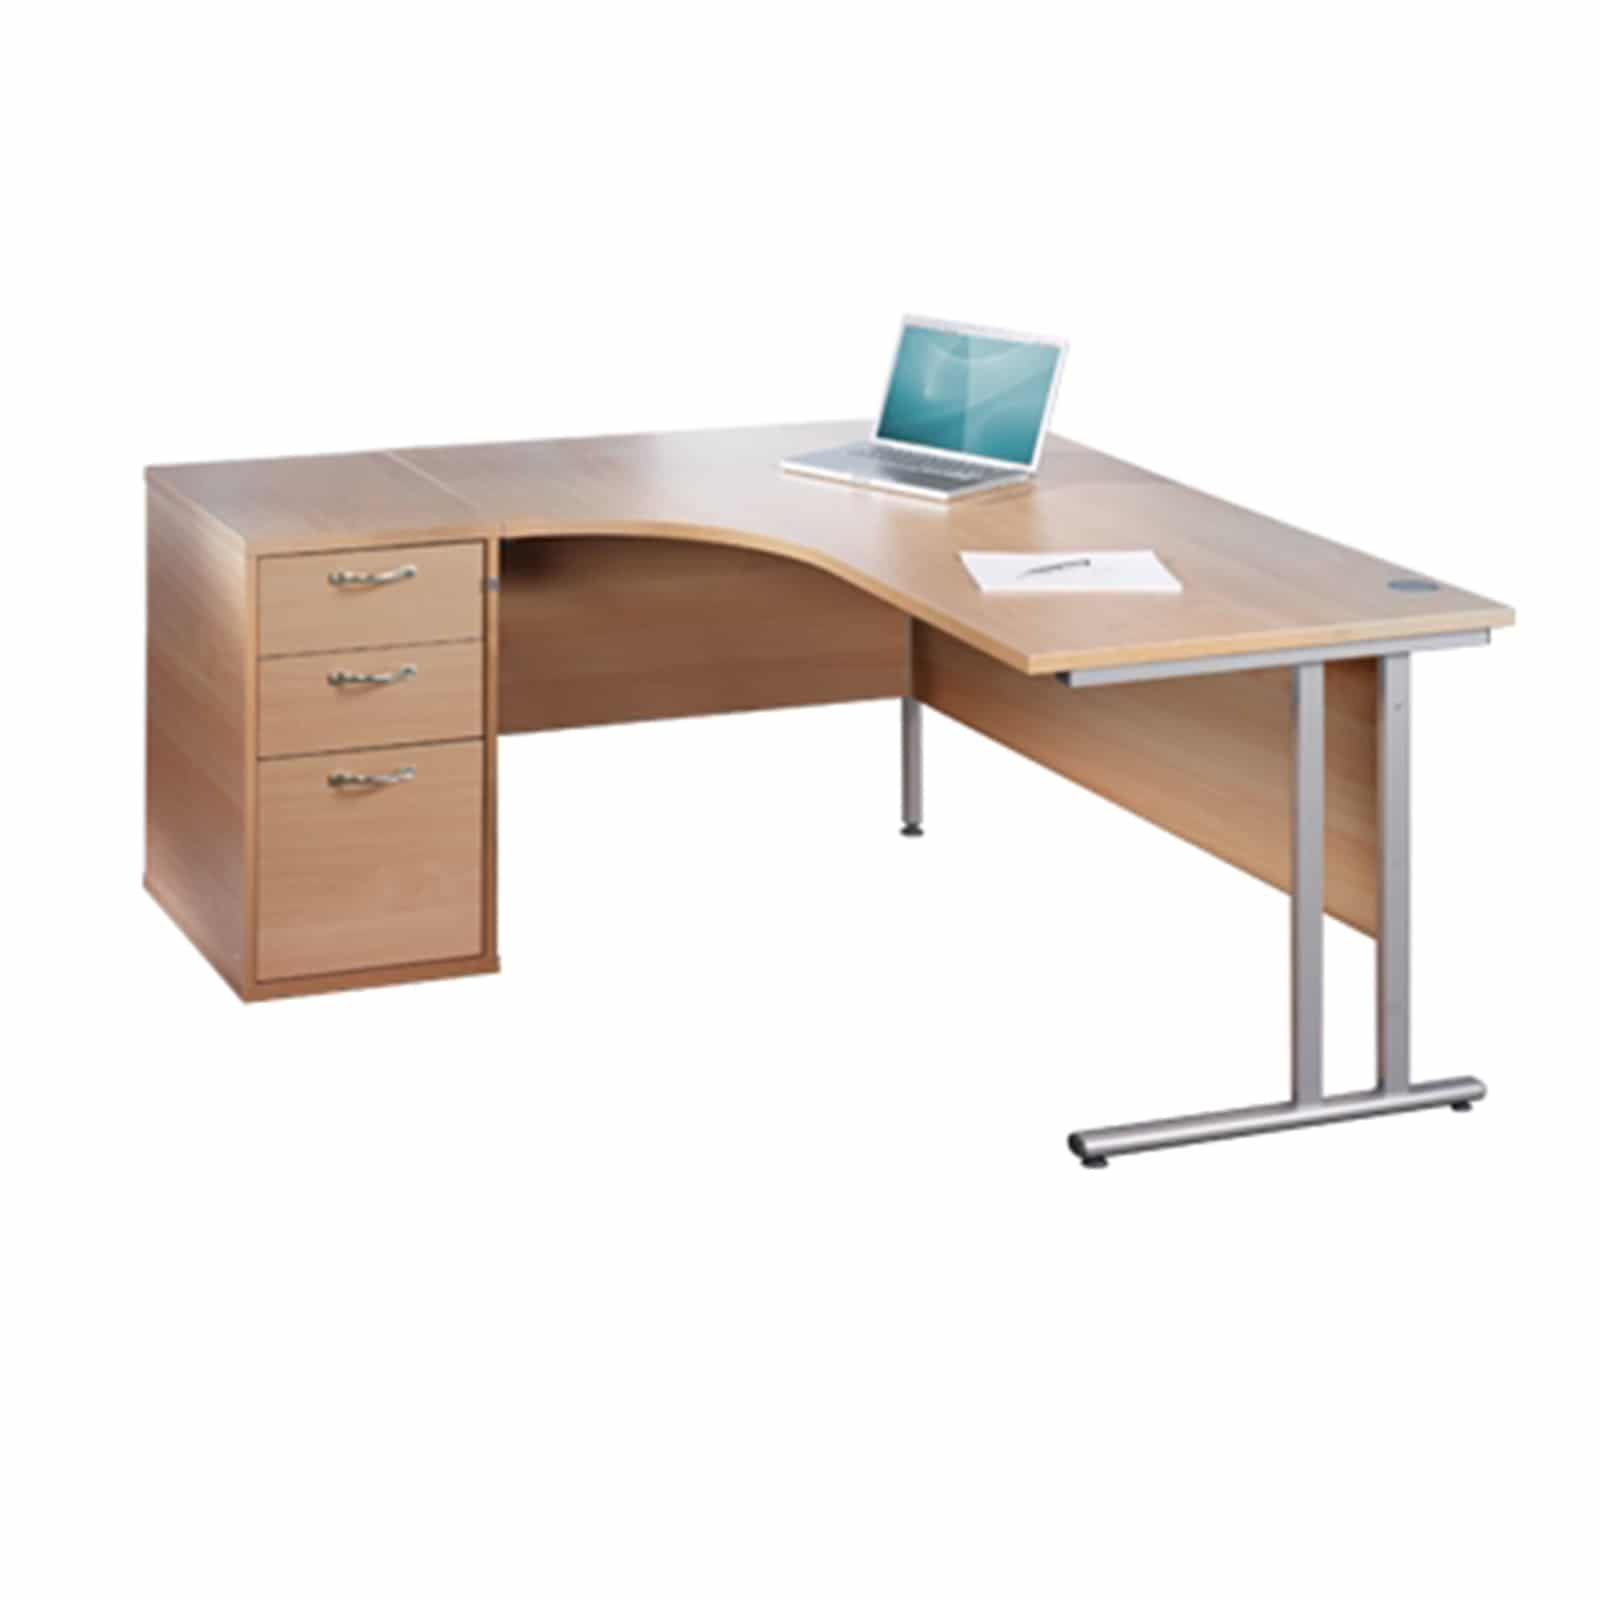 Office Desks Online : Office Workstation Bundles - Shop Office Desks at BIMI.co